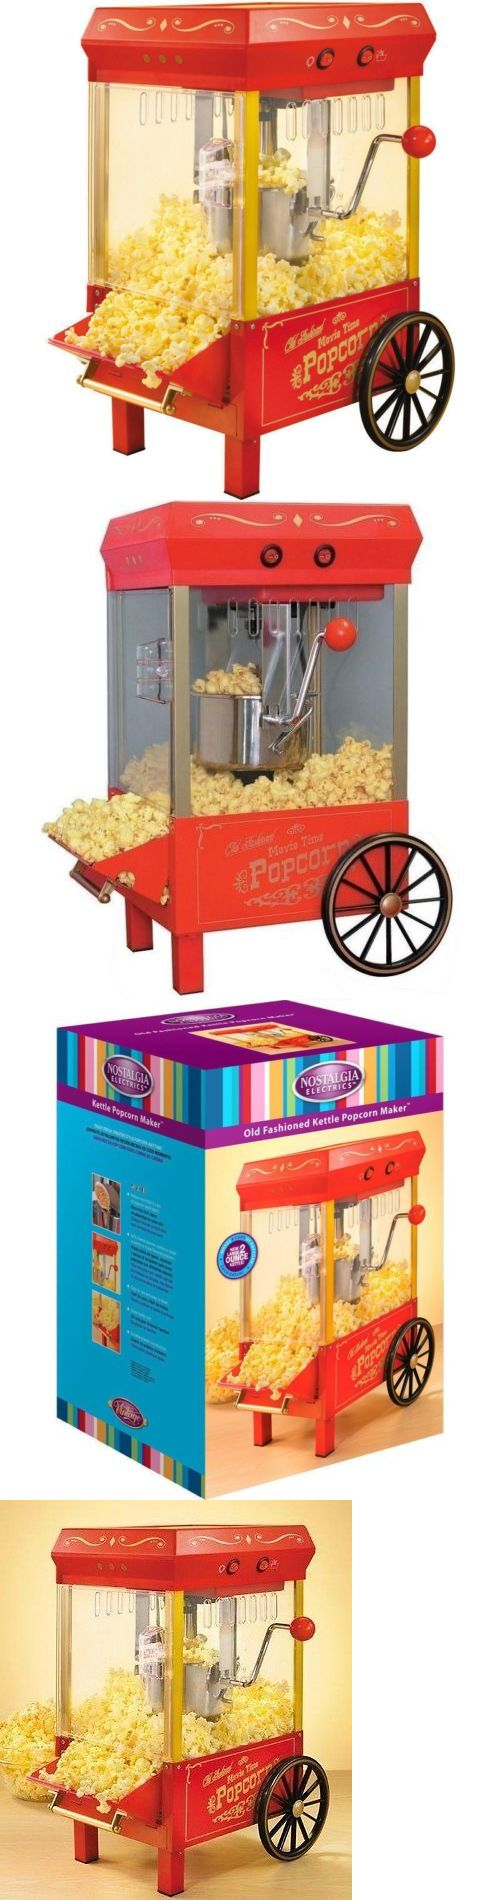 Popcorn Poppers 66752: 10 Cup Retro Countertop Popcorn Machine, Old Fashion Home Kettle Pop Corn Maker -> BUY IT NOW ONLY: $49.95 on eBay!